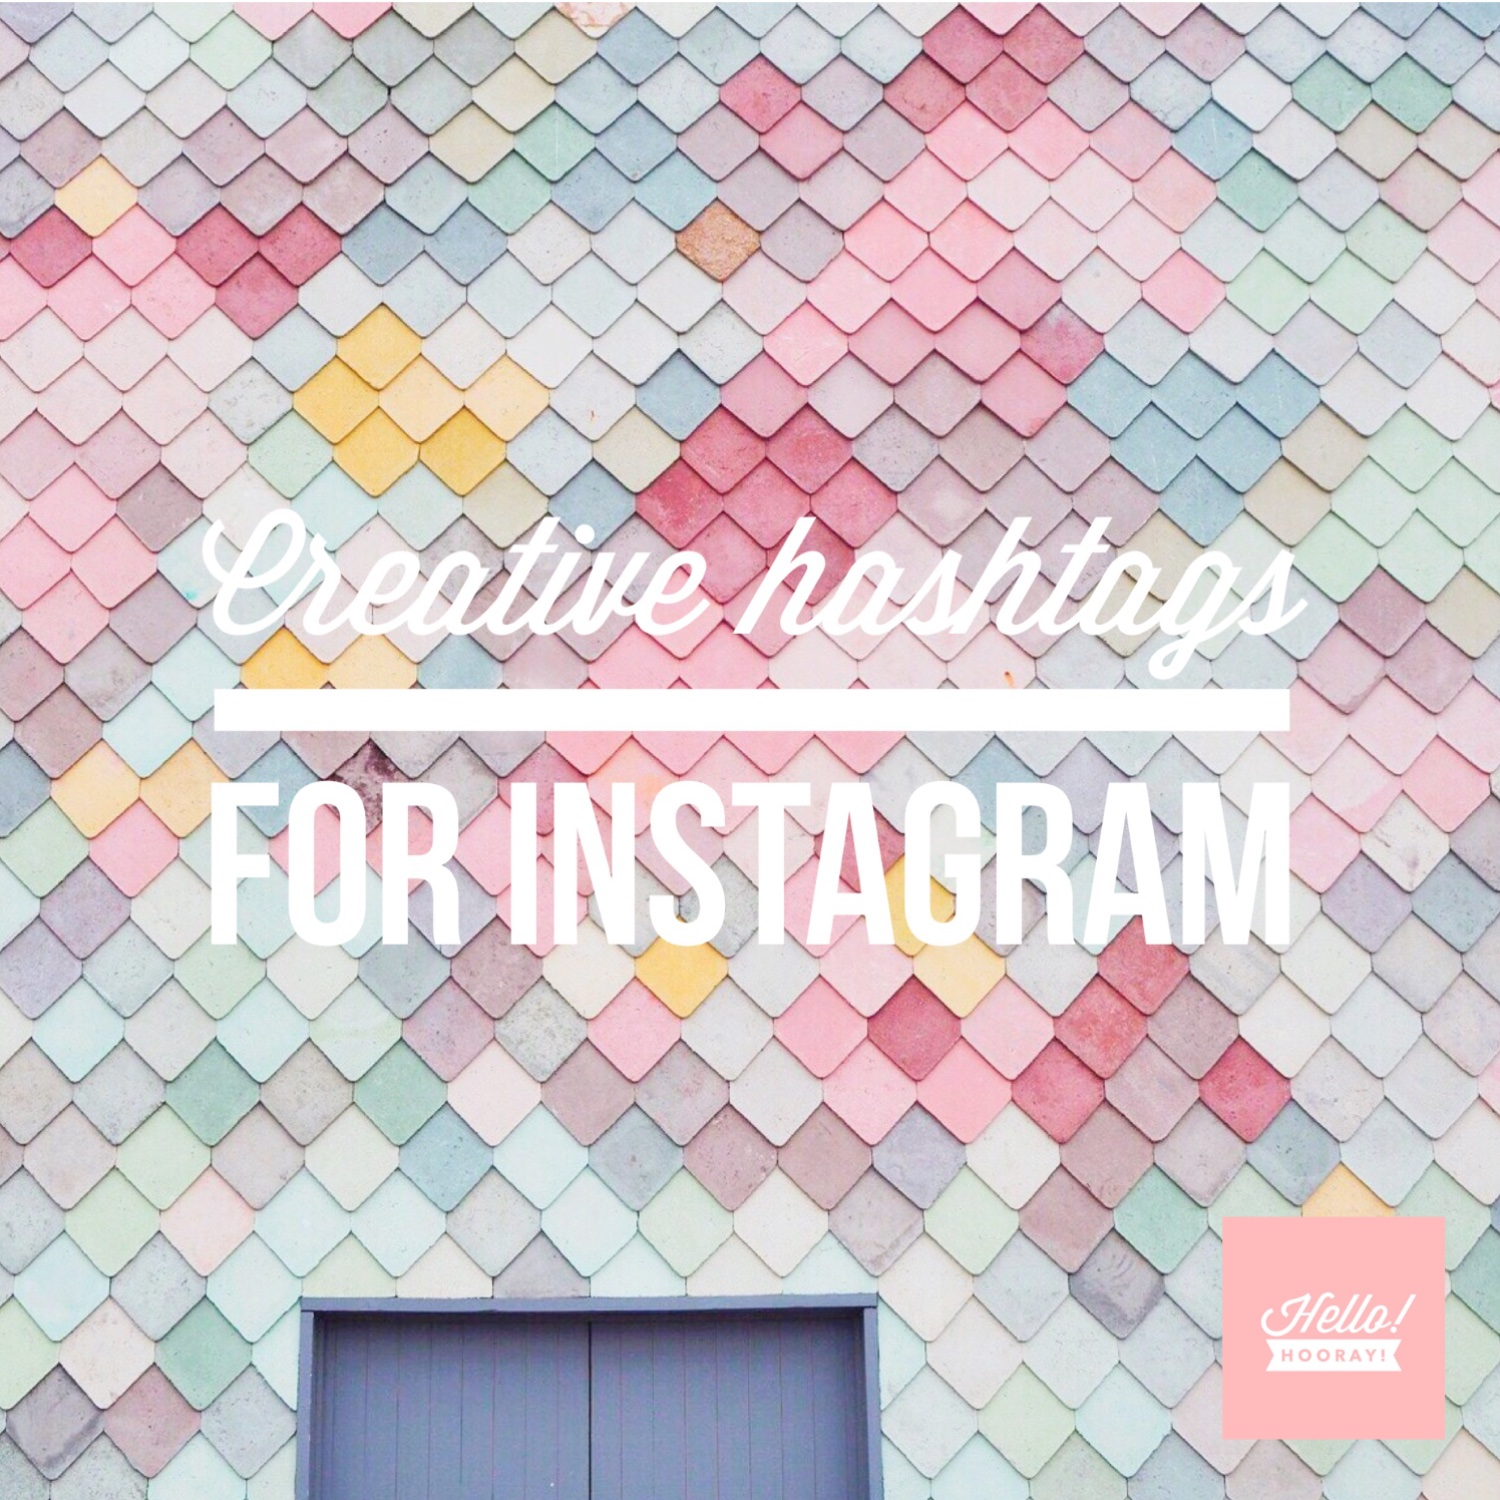 Creative-hashtags-for-Instagram